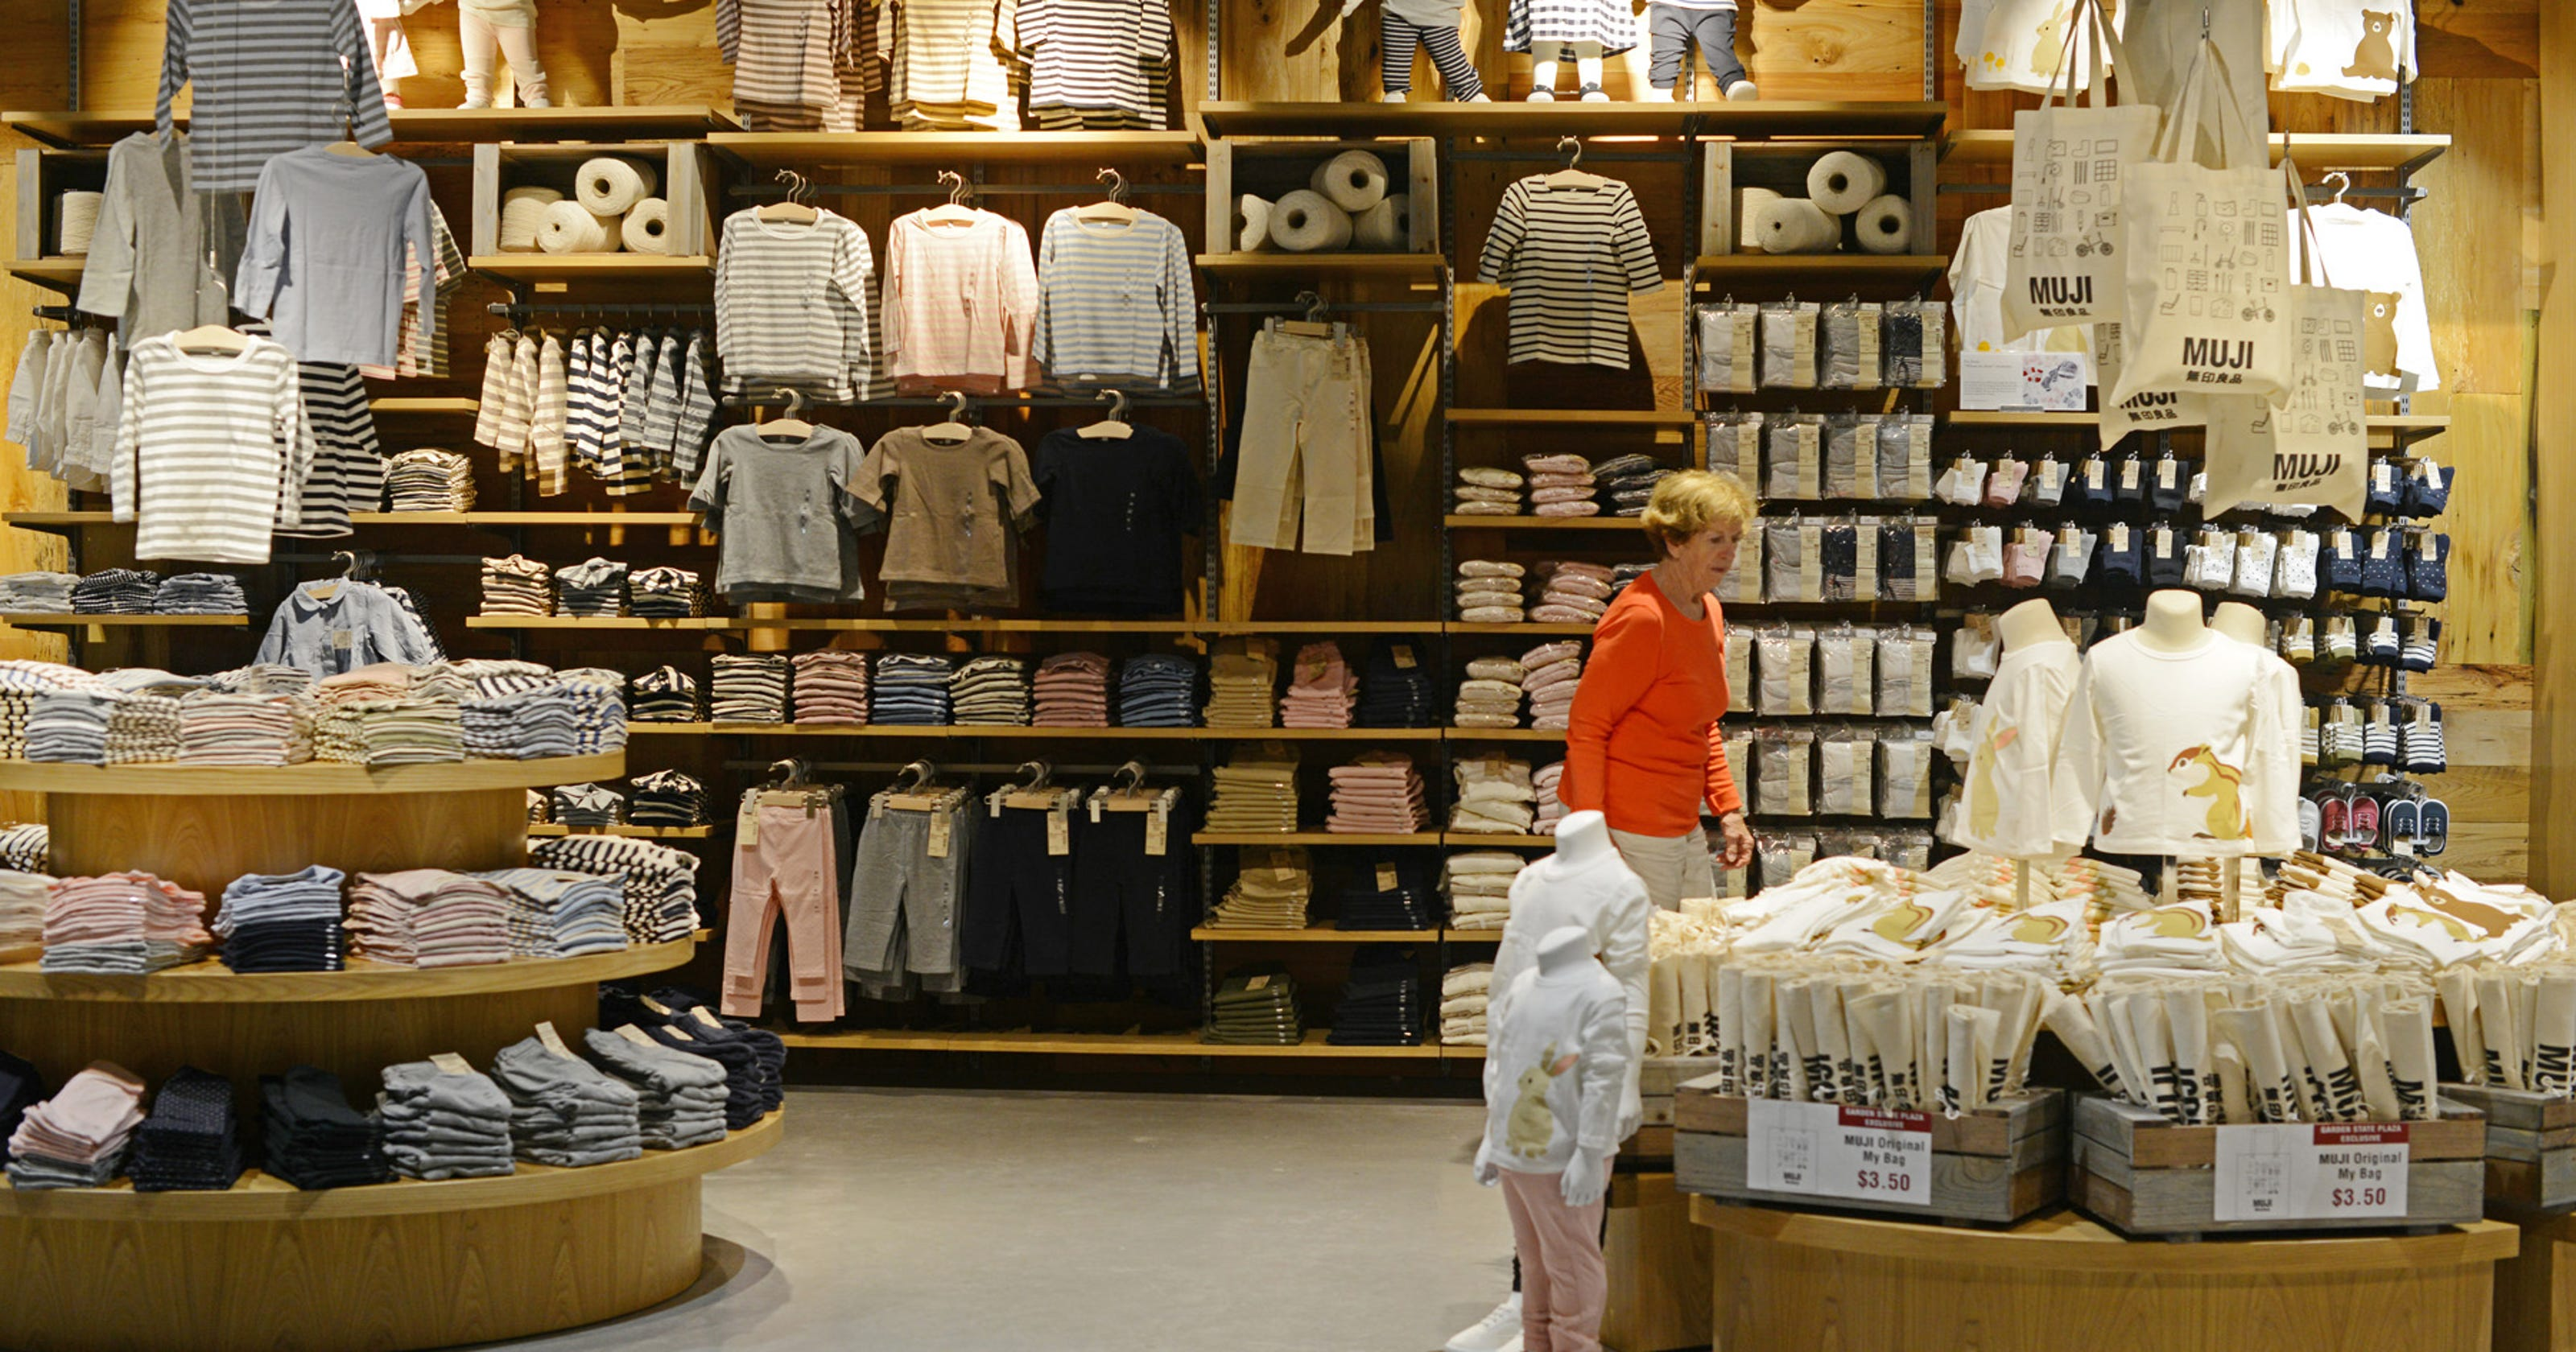 Muji brings Japanese vision to first NJ store